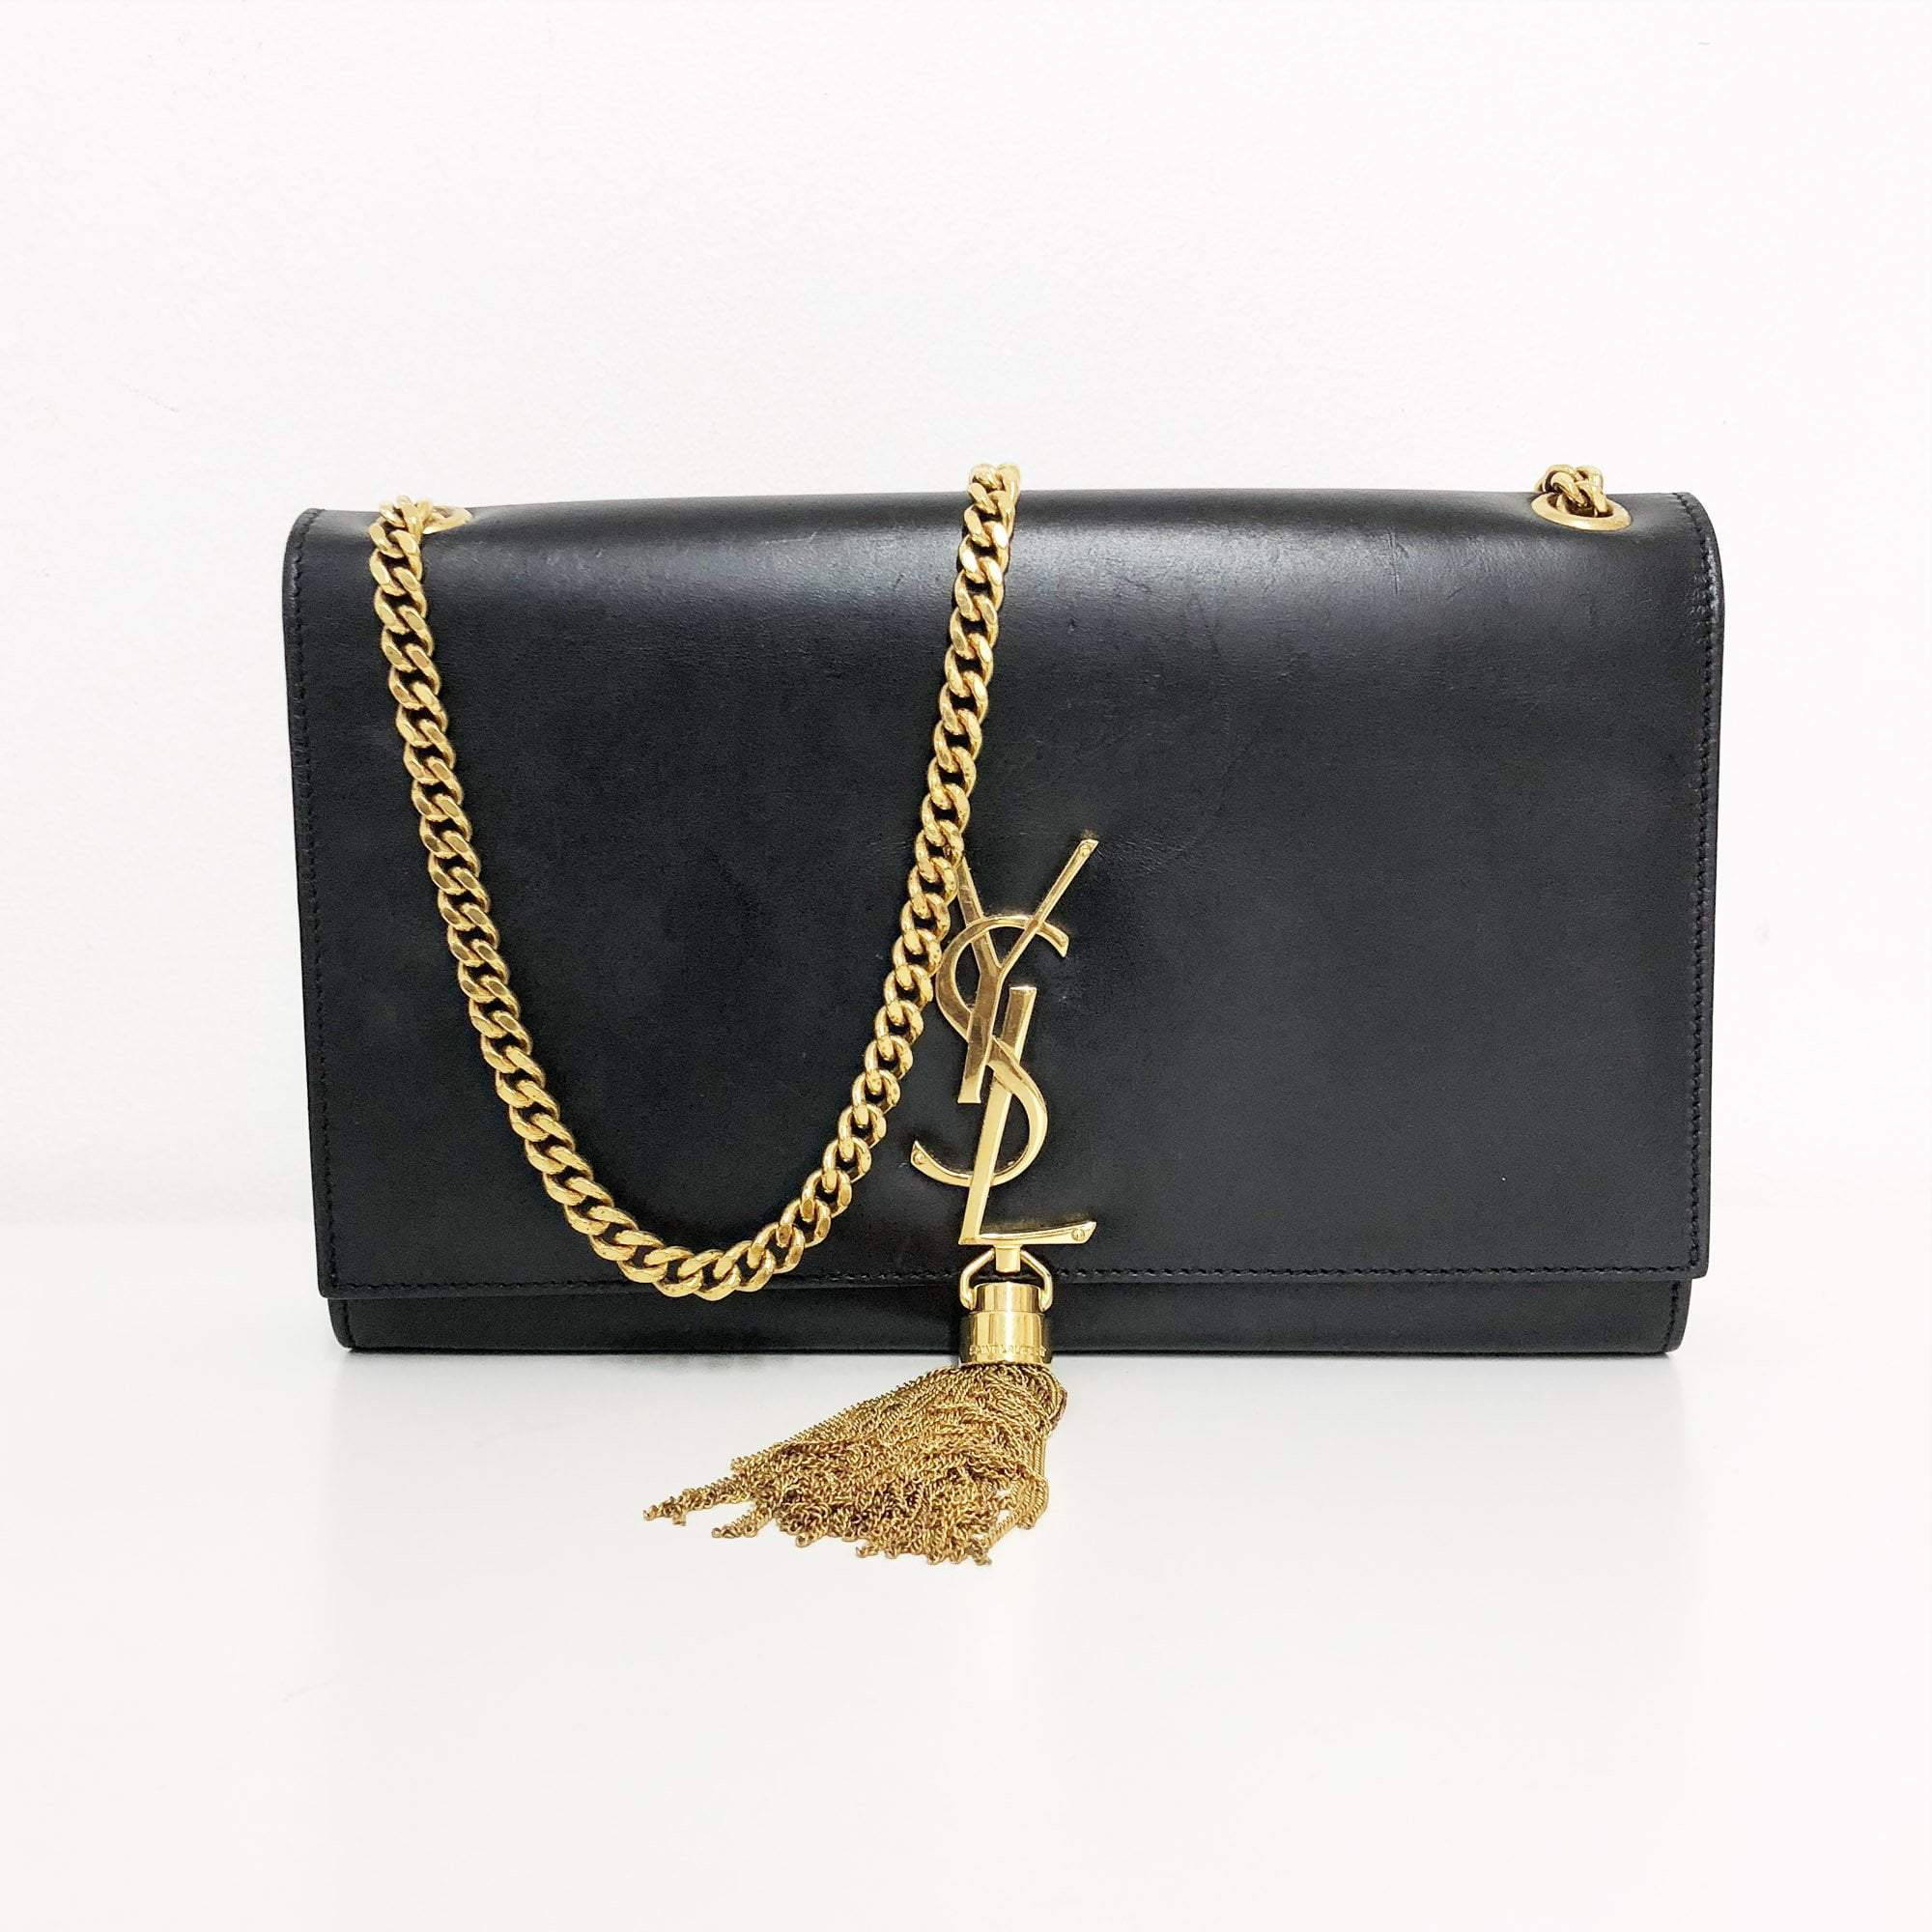 Yves Saint Laurent Black Calf Leather Medium Cassandre Tassel Bag